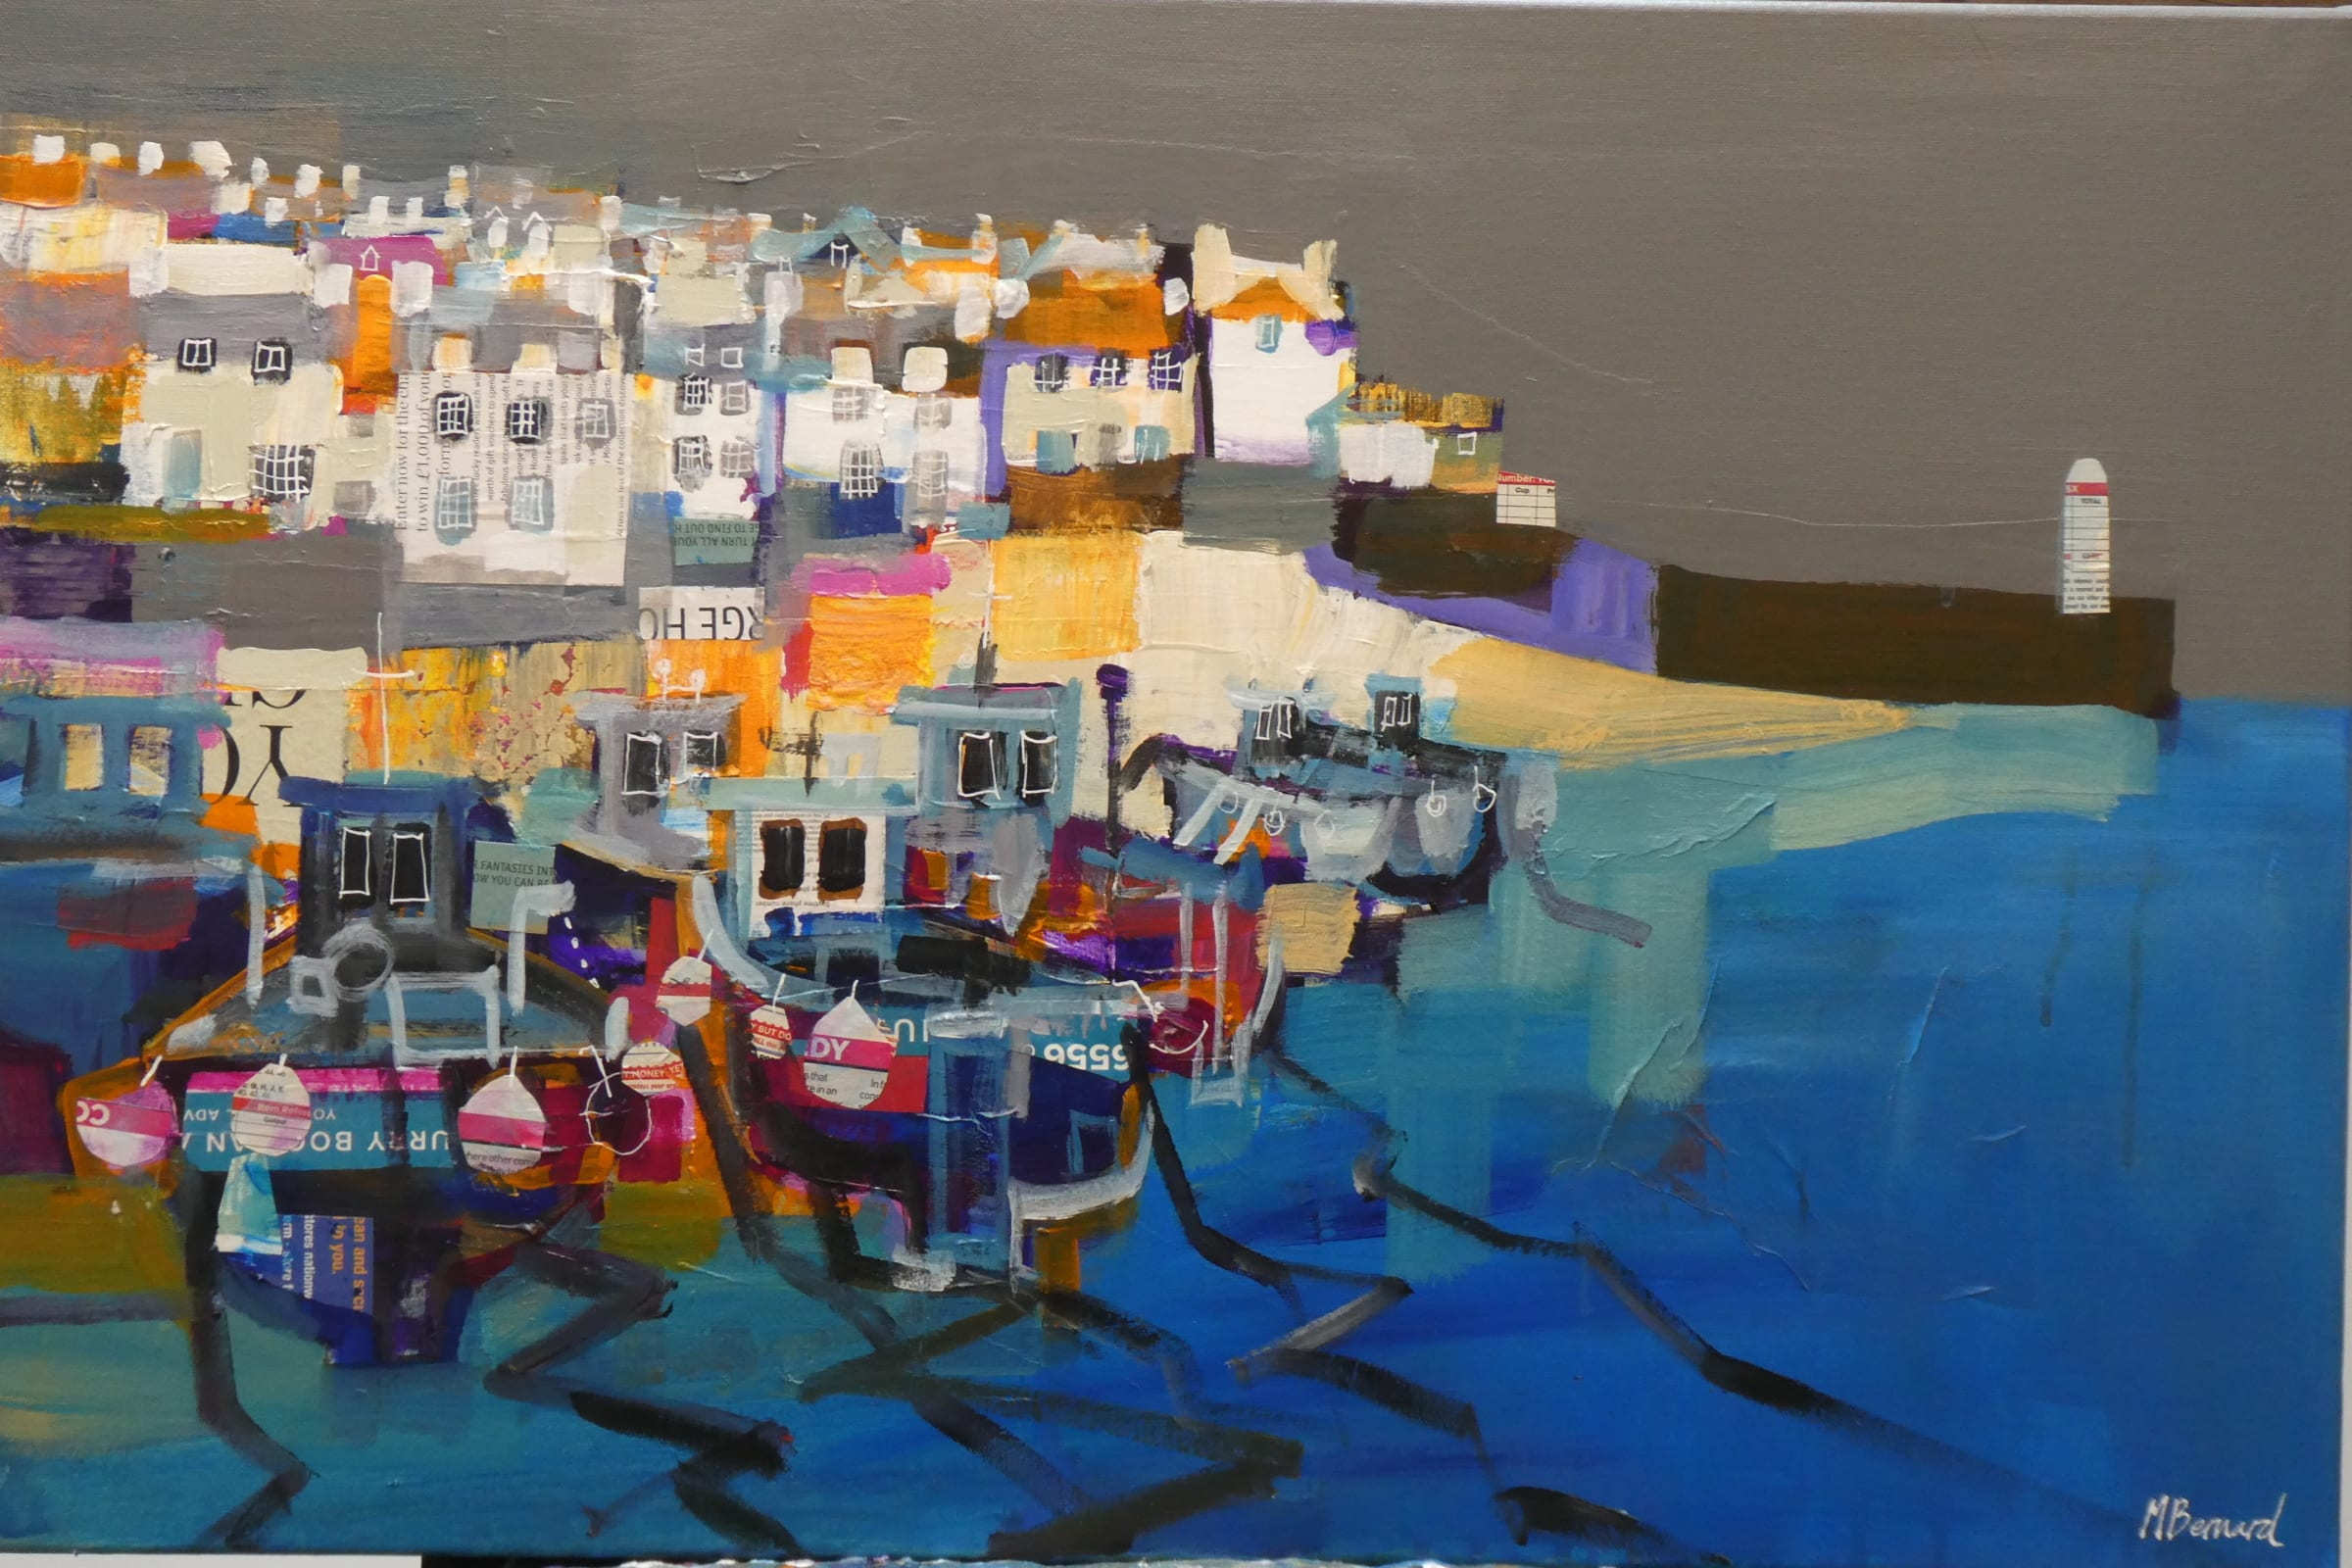 """<span class=""""link fancybox-details-link""""><a href=""""/artists/155-mike-bernard-ri/works/7667-mike-bernard-ri-fishing-boats-st-ives-2021-2021/"""">View Detail Page</a></span><div class=""""artist""""><strong>Mike Bernard RI</strong></div> <div class=""""title""""><em>Fishing Boats, St Ives, 2021</em>, 2021</div> <div class=""""medium"""">acrylic and collage on canvas</div> <div class=""""dimensions"""">canvas: 60 x 60 cm <br /> frame: 65 x 65 cm</div><div class=""""price"""">£1,800.00</div><div class=""""copyright_line"""">Own Art: £180 x 10 Months, 0% APR</div>"""